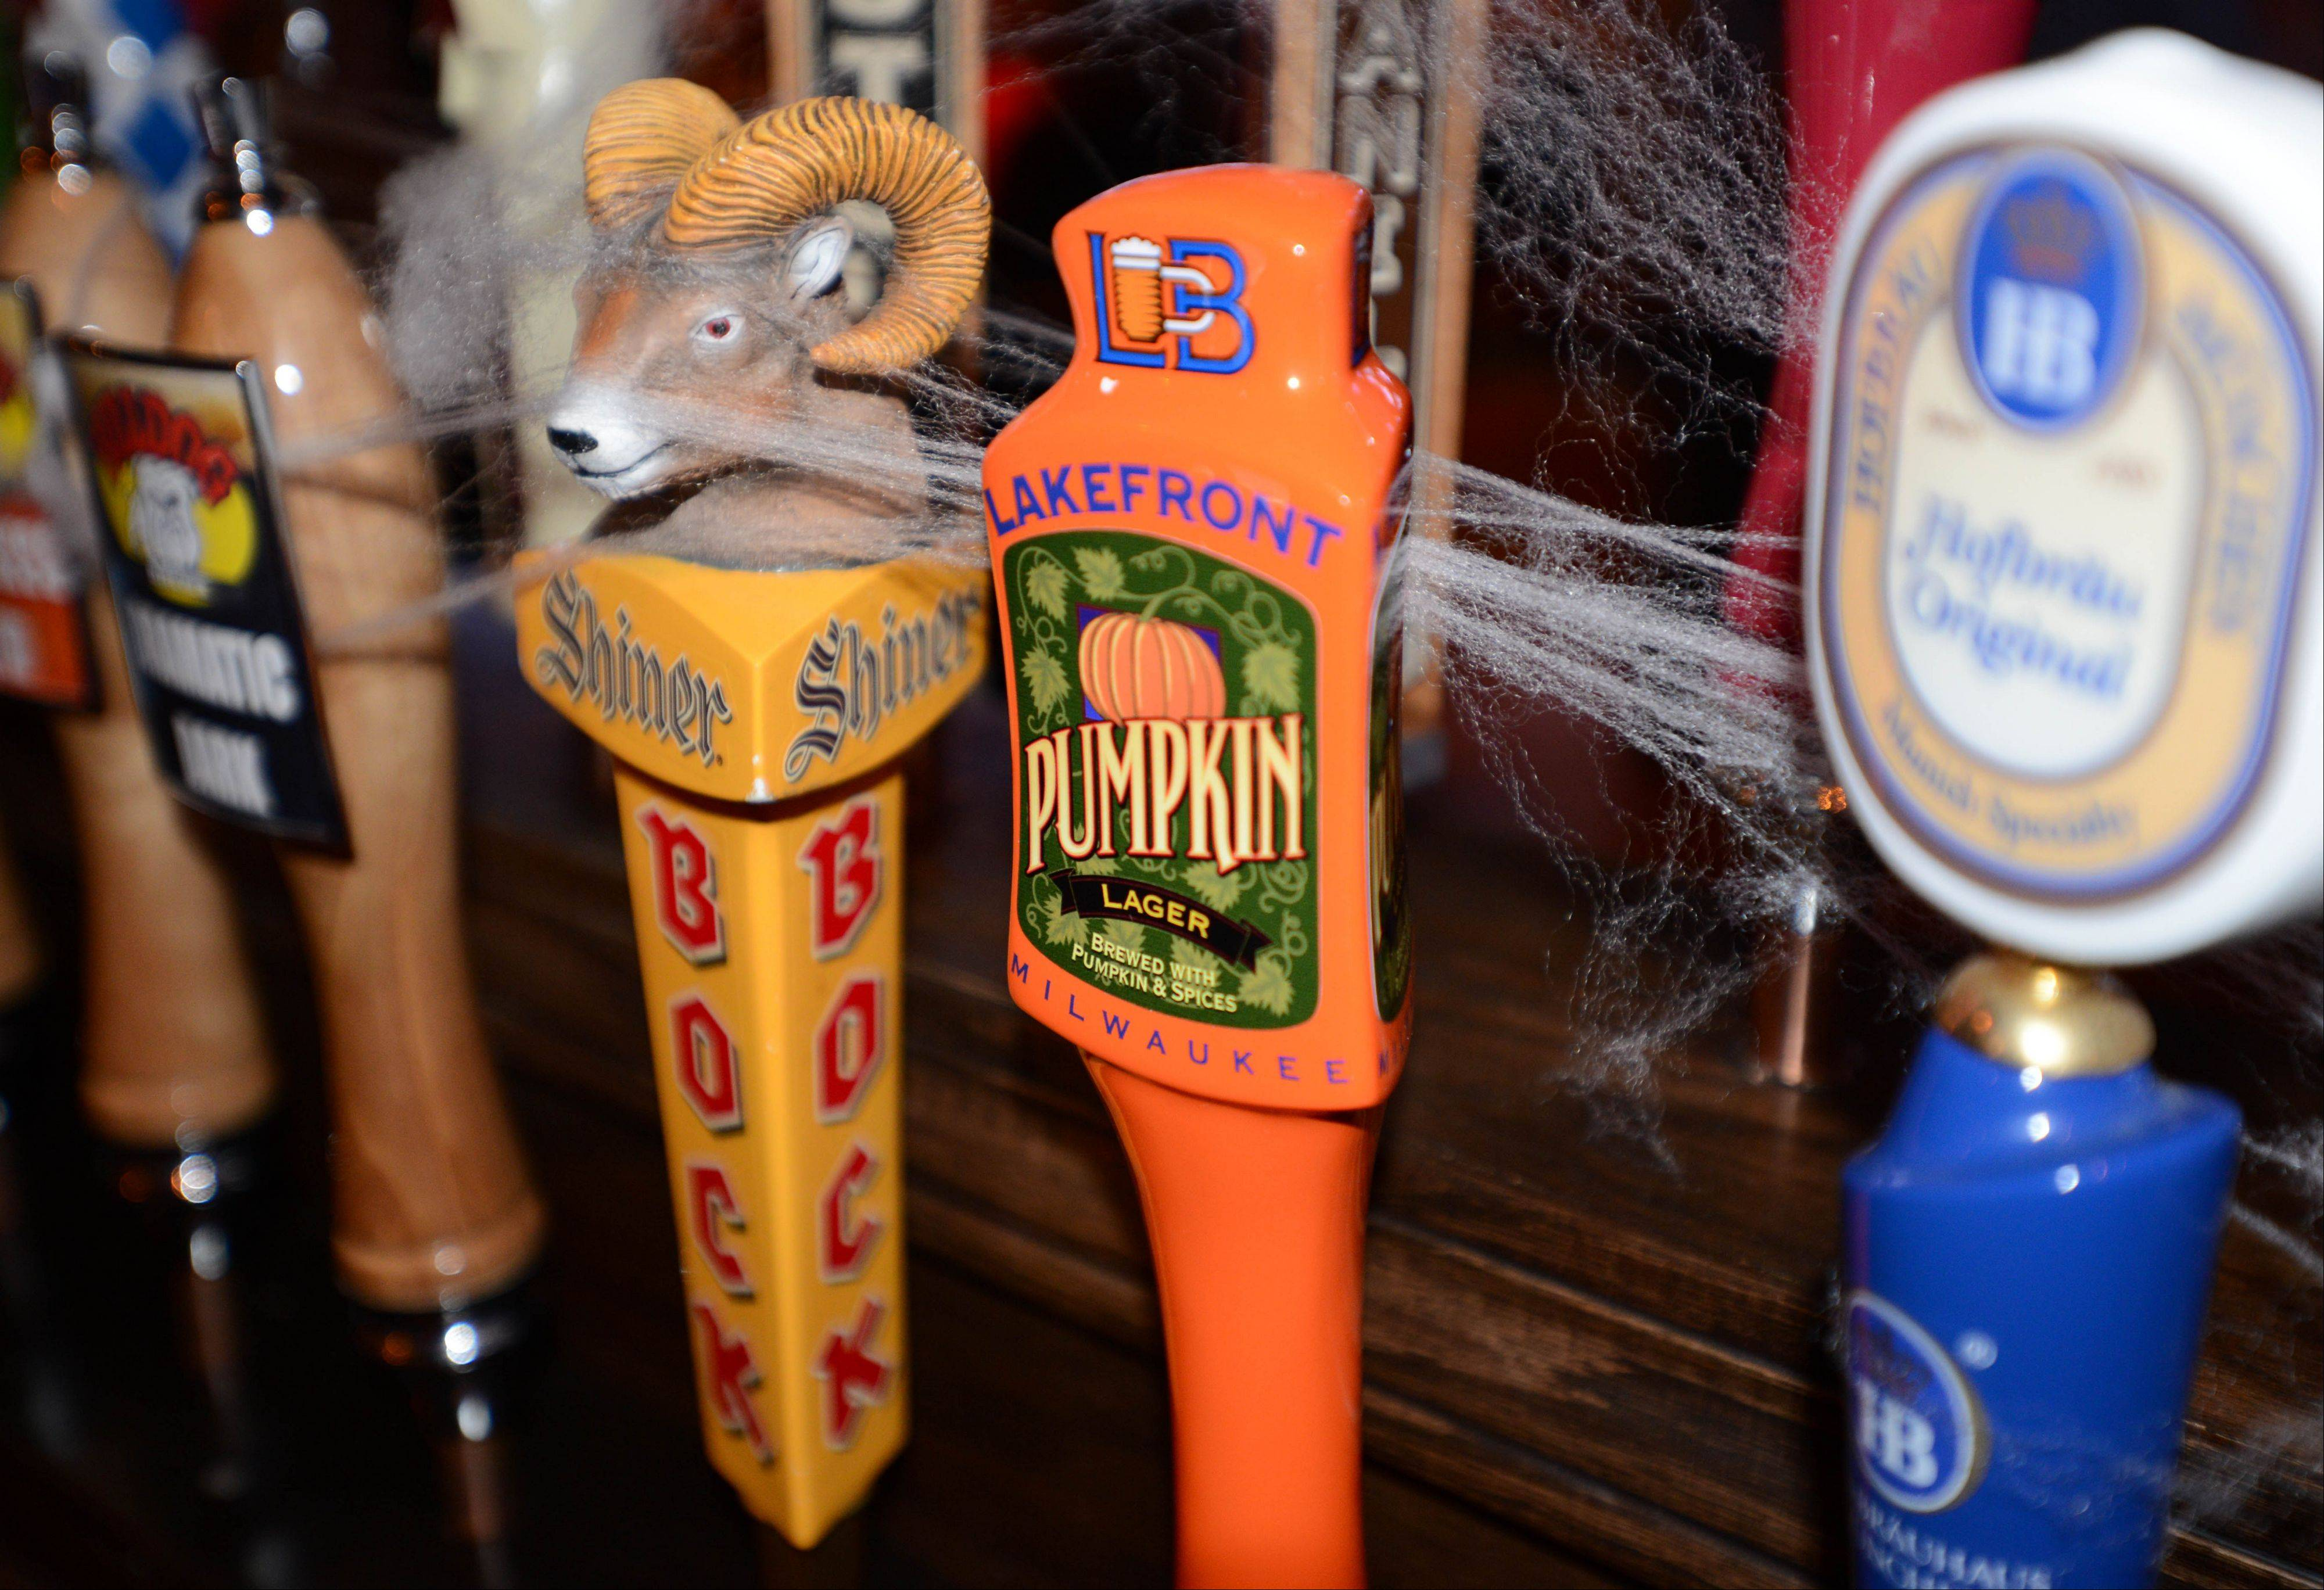 Bulldog Ale House in Roselle has a massive selection of beers on tap.